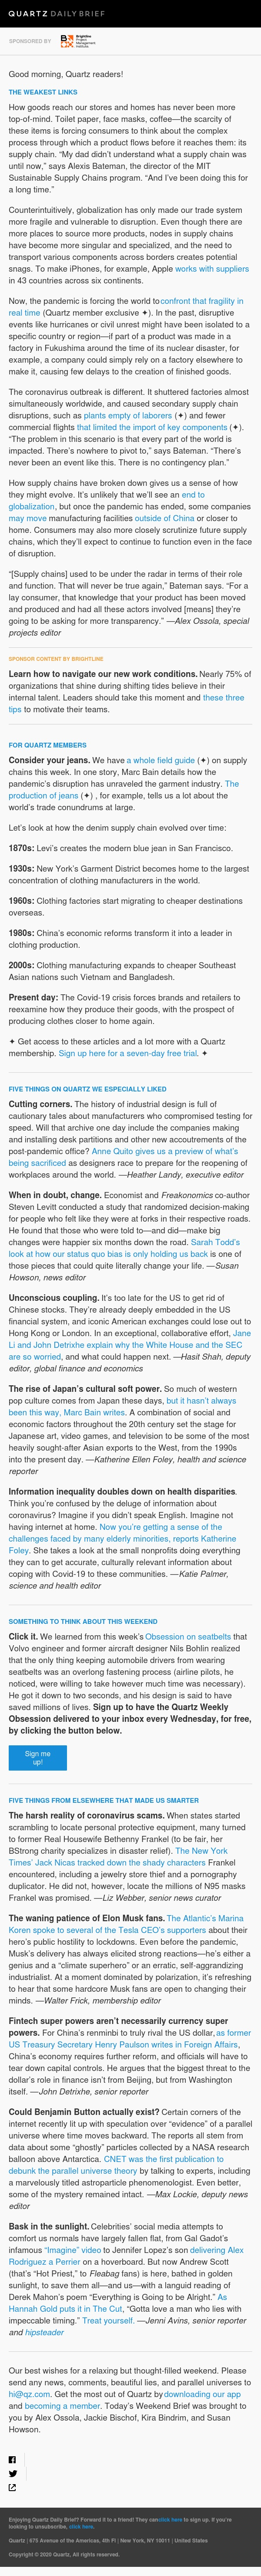 Weekend edition—Unraveling supply chains, the science of change, Japan's cultural soft power